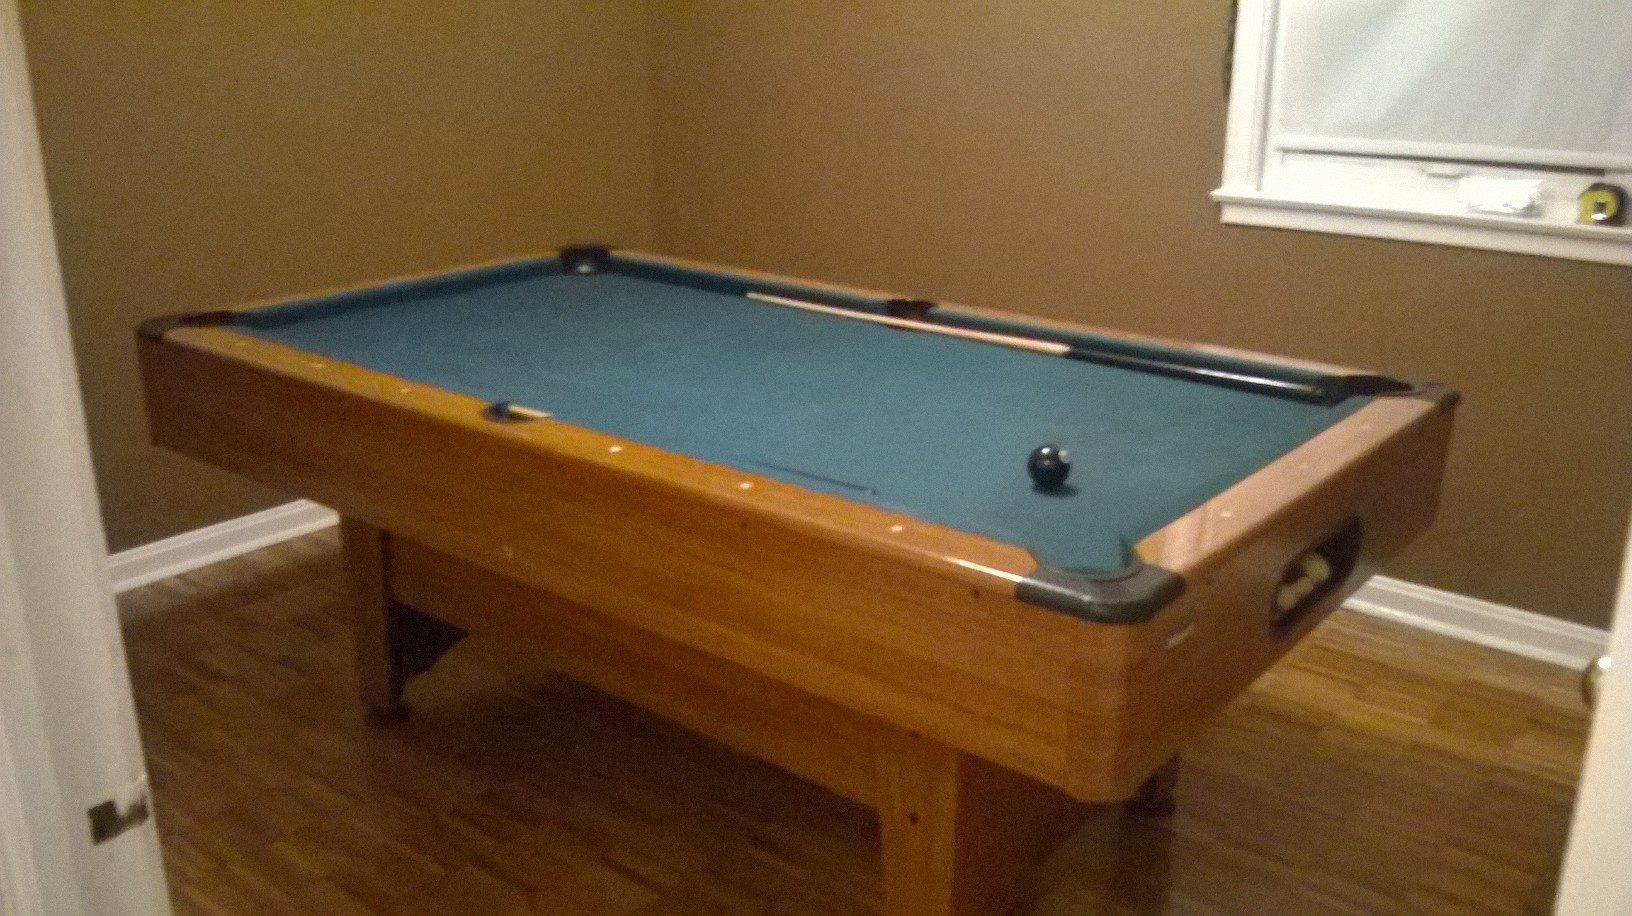 New Felt For Mizerak Pool Table - How to put felt on a pool table